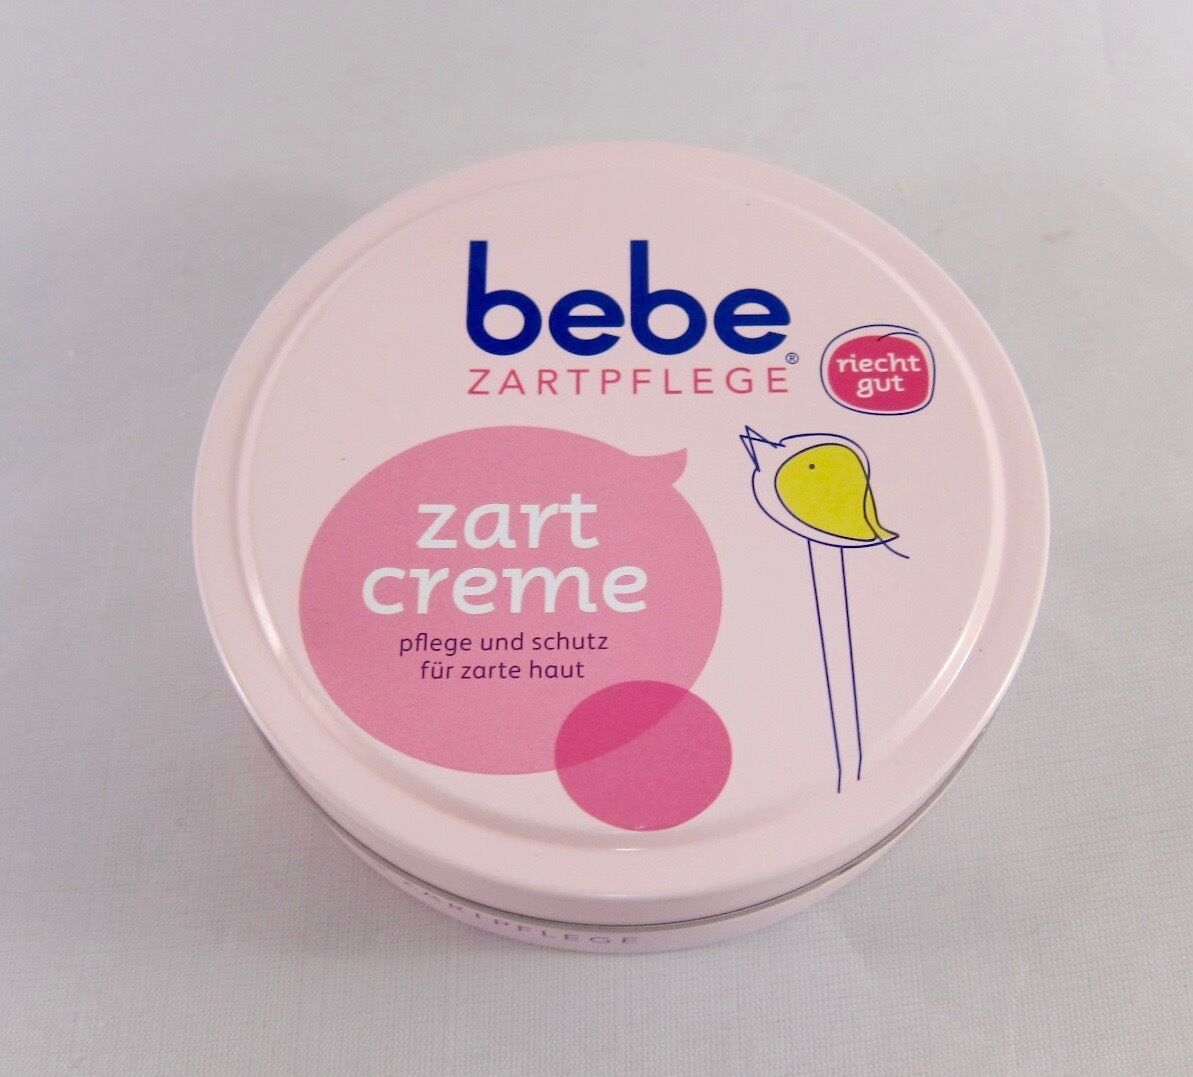 Primary image for Bebe Zartcreme Zartpflege Caring Cream -150 ml-CAN-Made in Germany-FREE SHIPPING